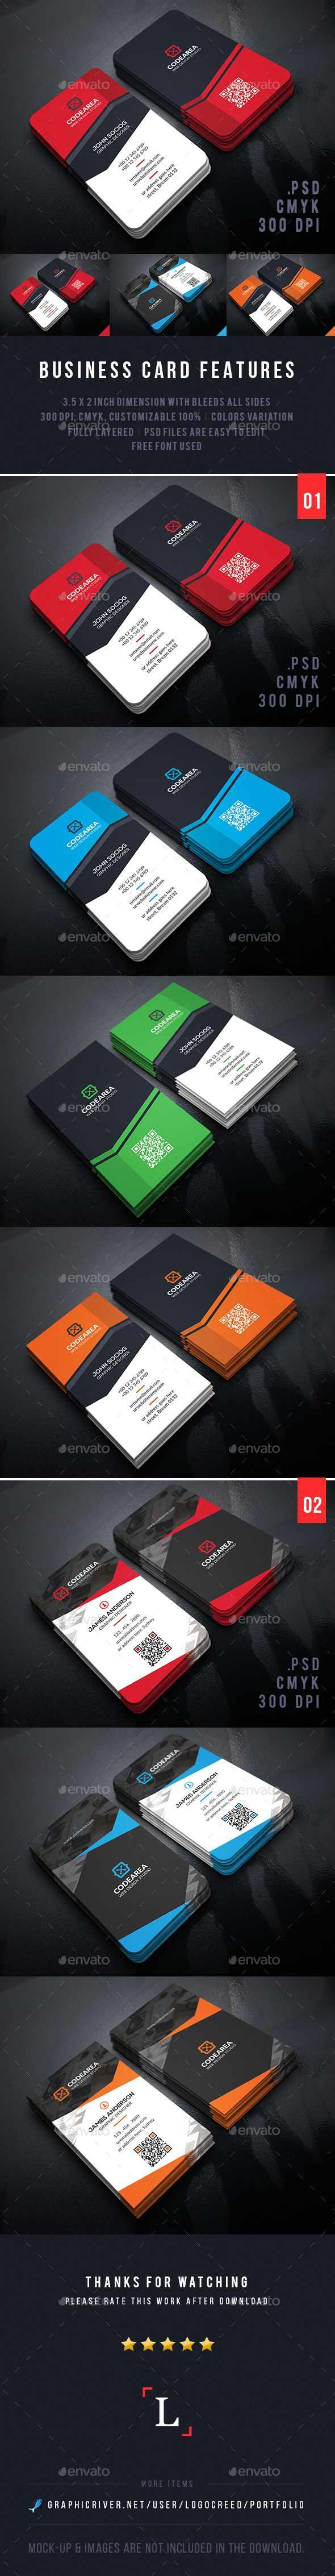 11 best business card designs images on pinterest